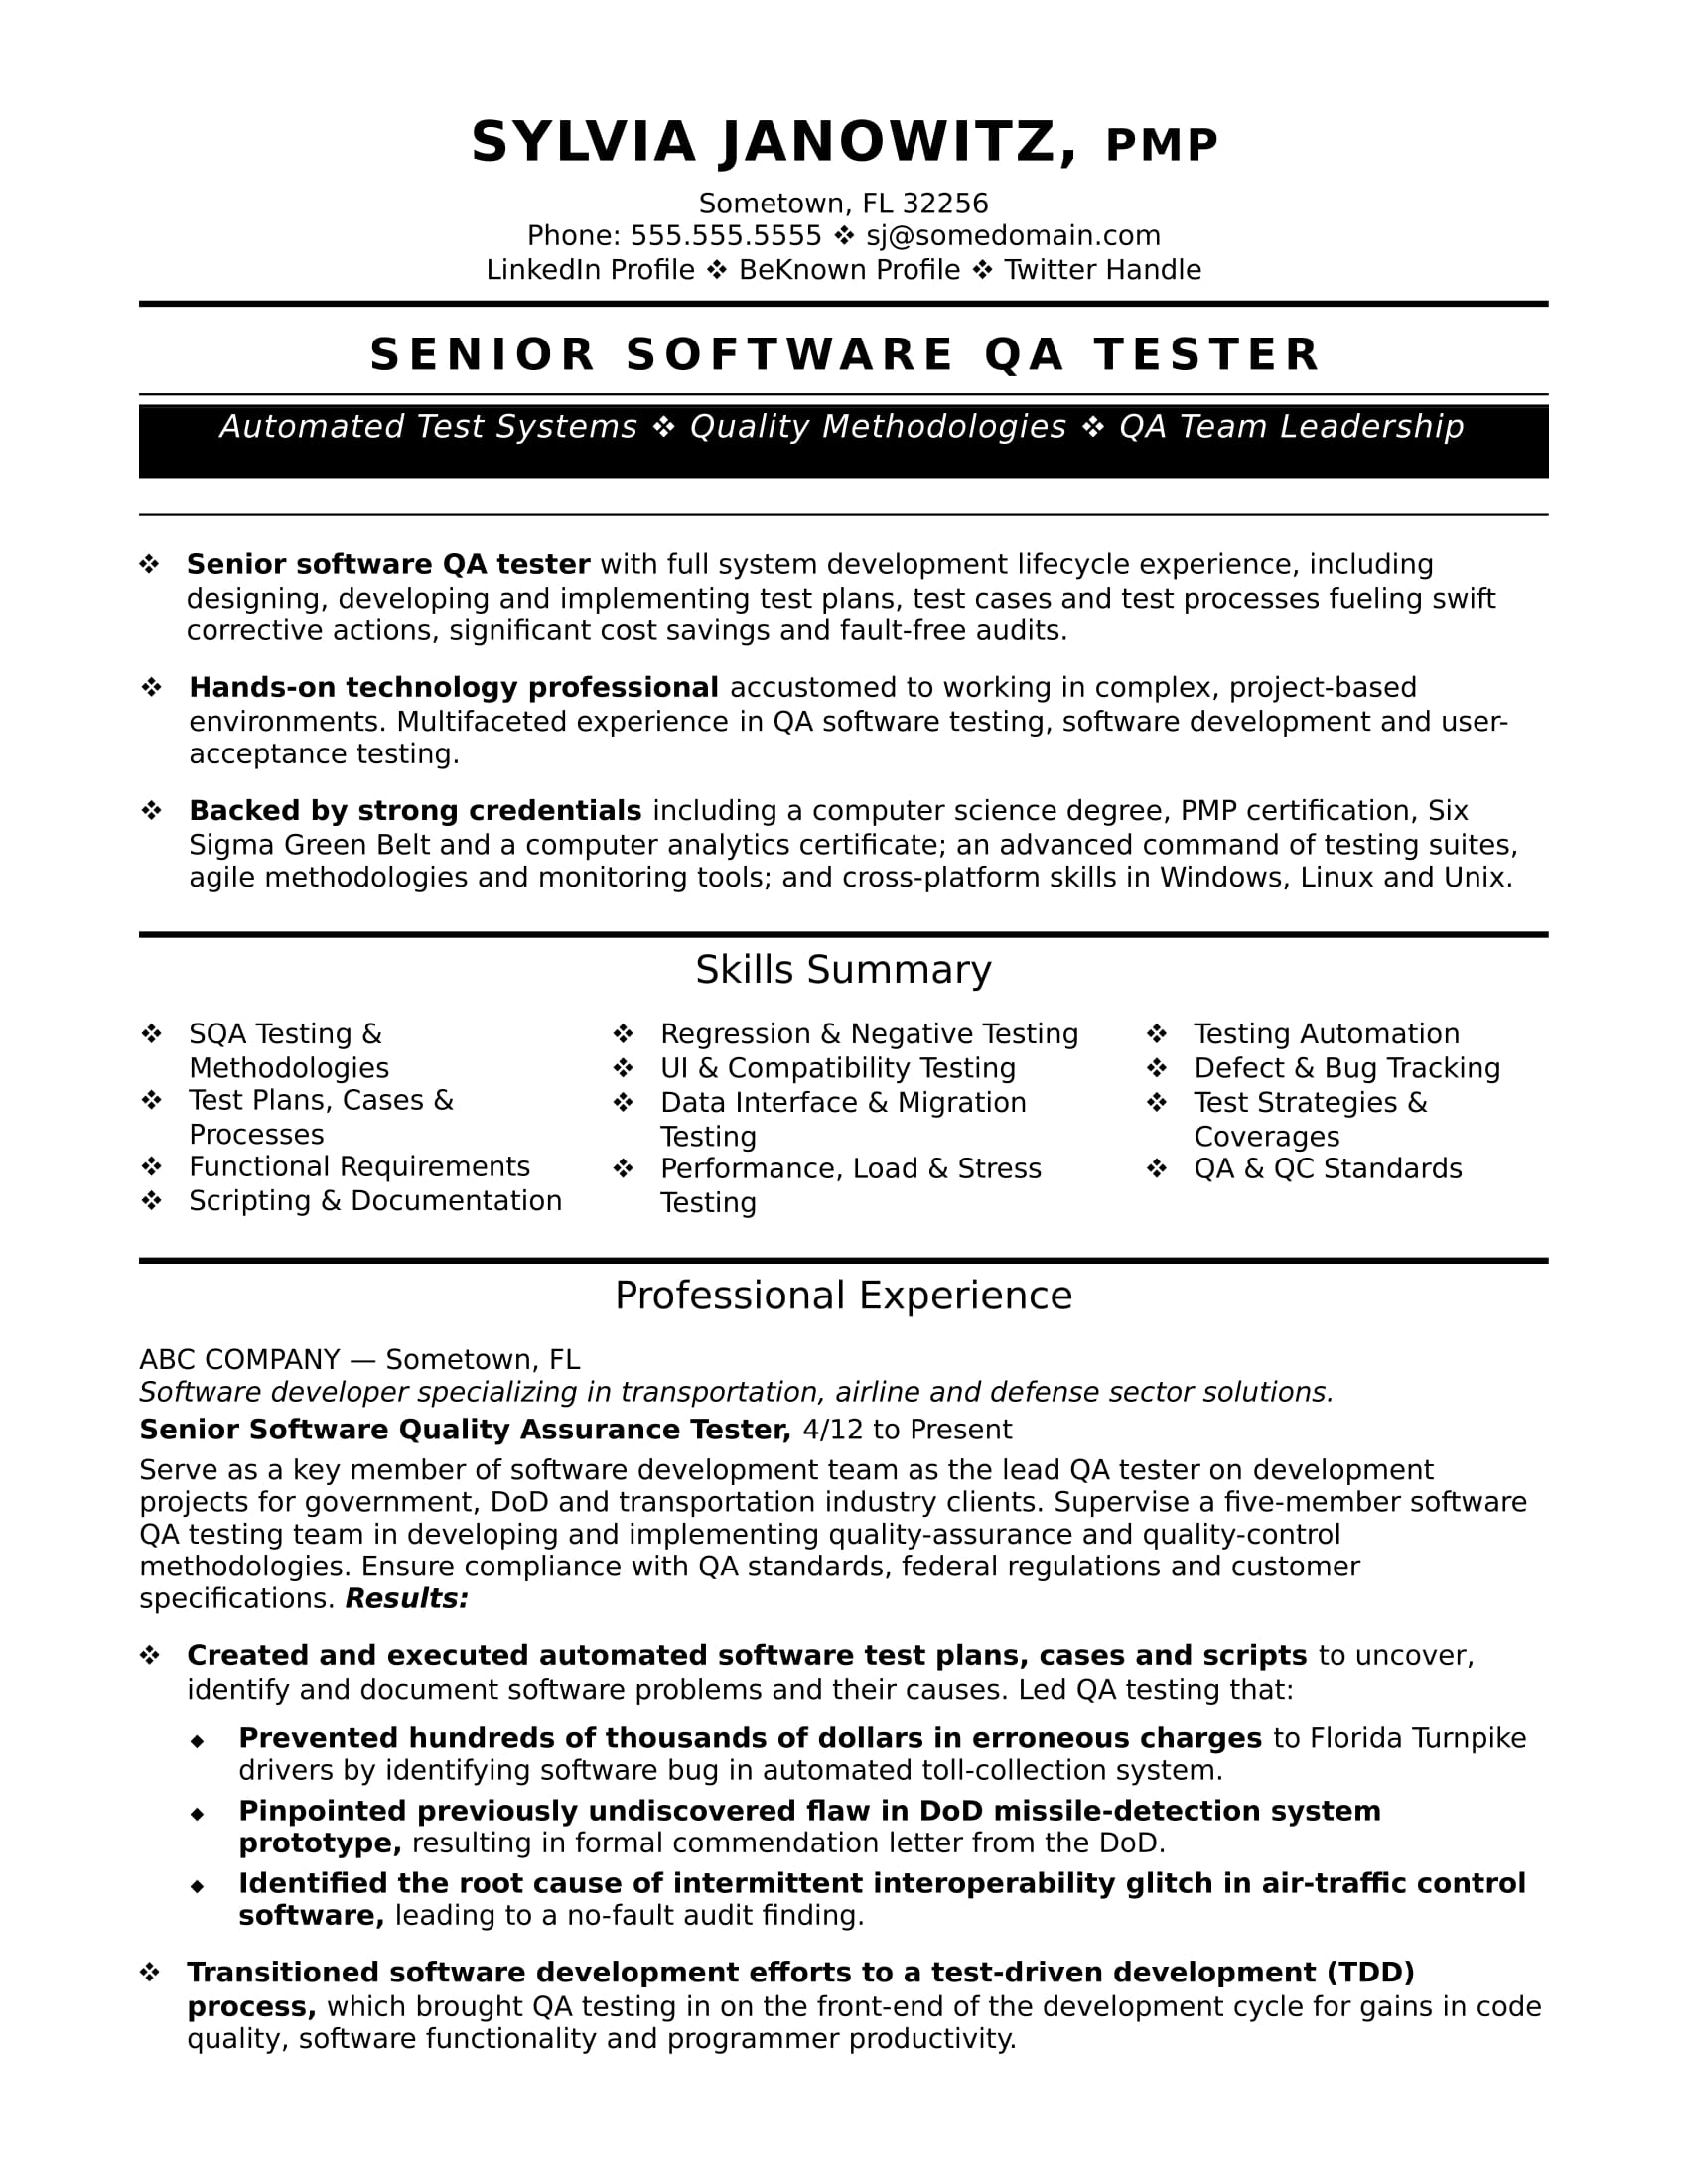 experienced qa software tester resume sample monster automation simple for computer Resume Automation Tester Sample Resume